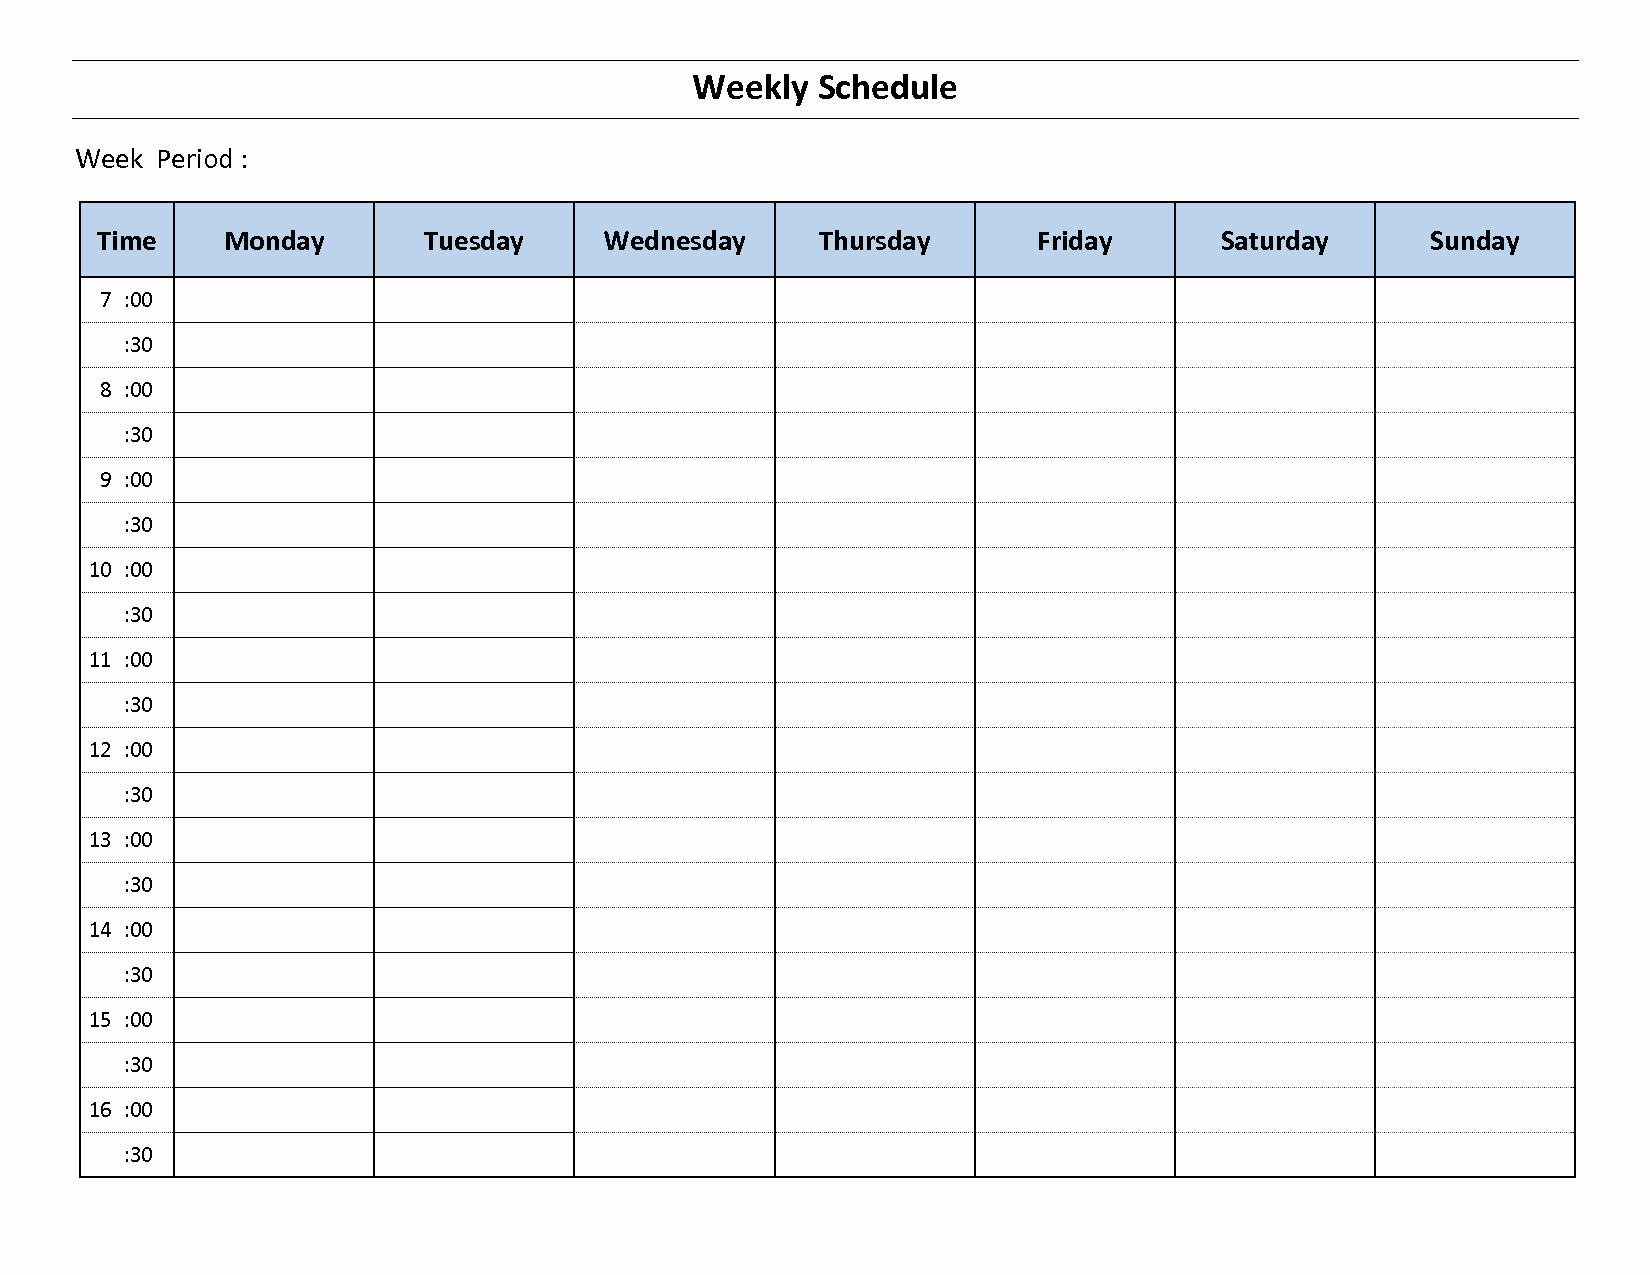 Weekly Schedule Templates Excel Luxury Construction Schedule Template Excel Free Download